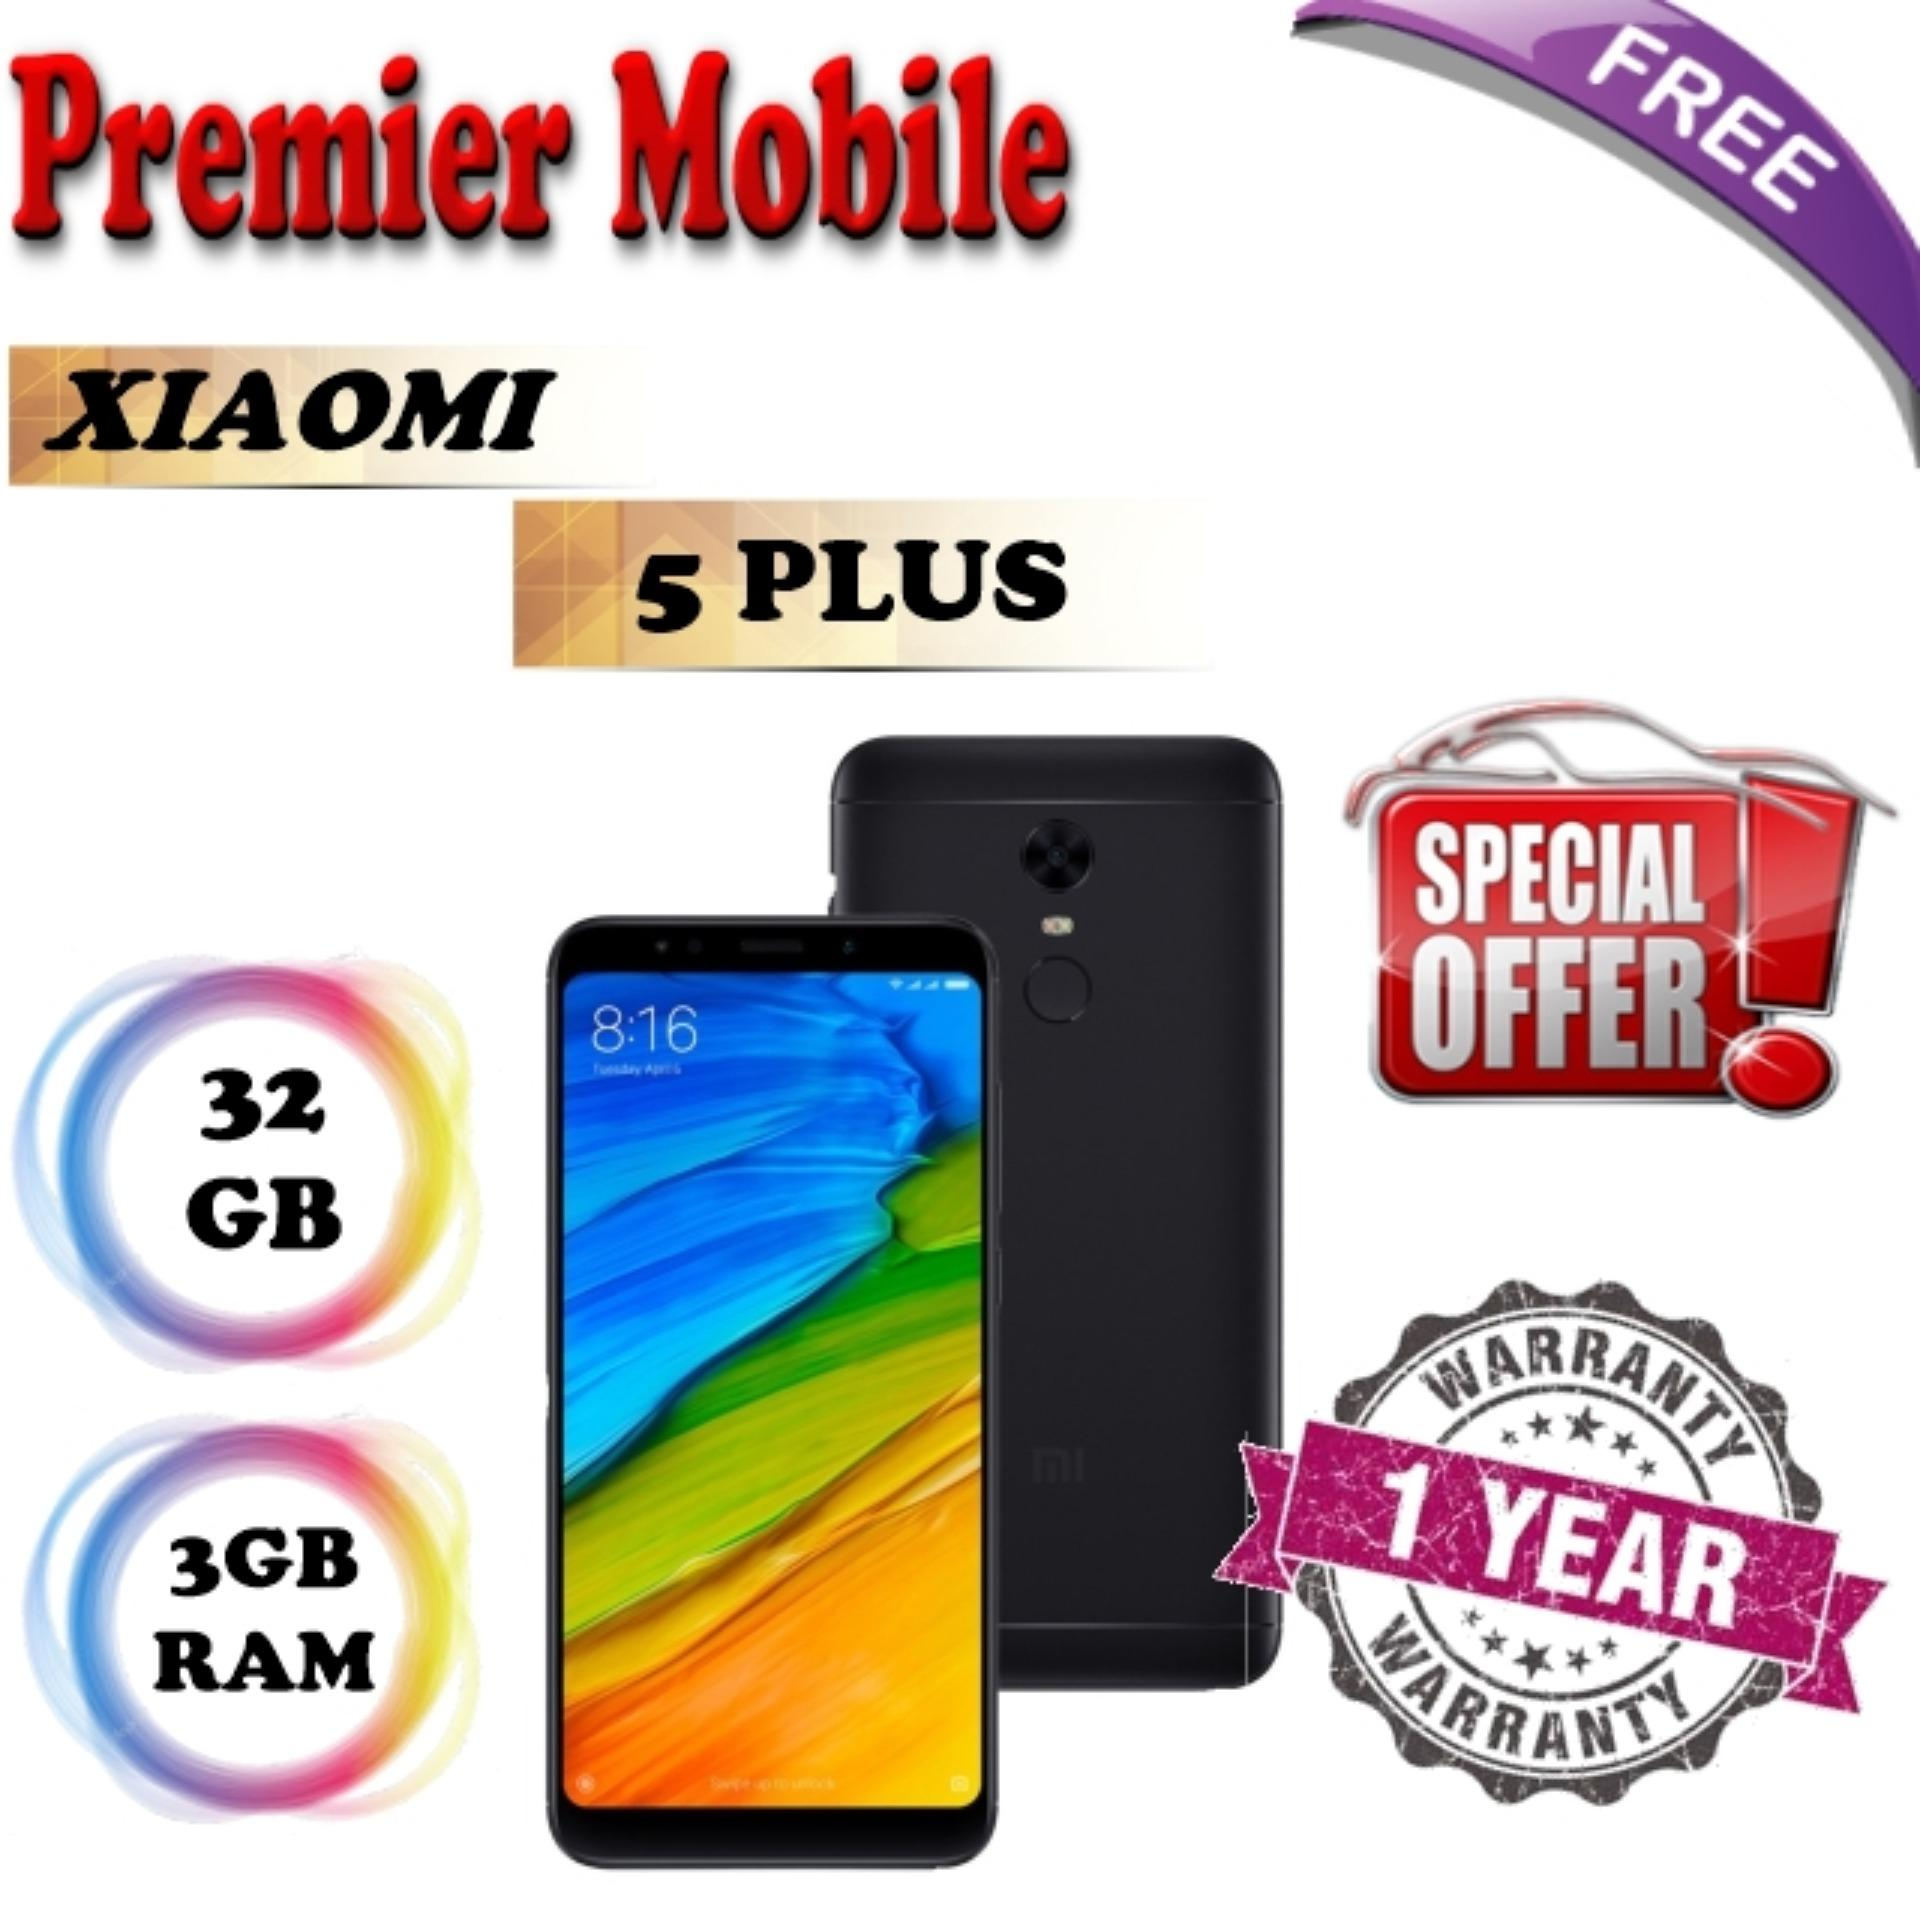 Xiaomi Redmi 5 Plus 32Gb Local Xiaomi Cheap On Singapore